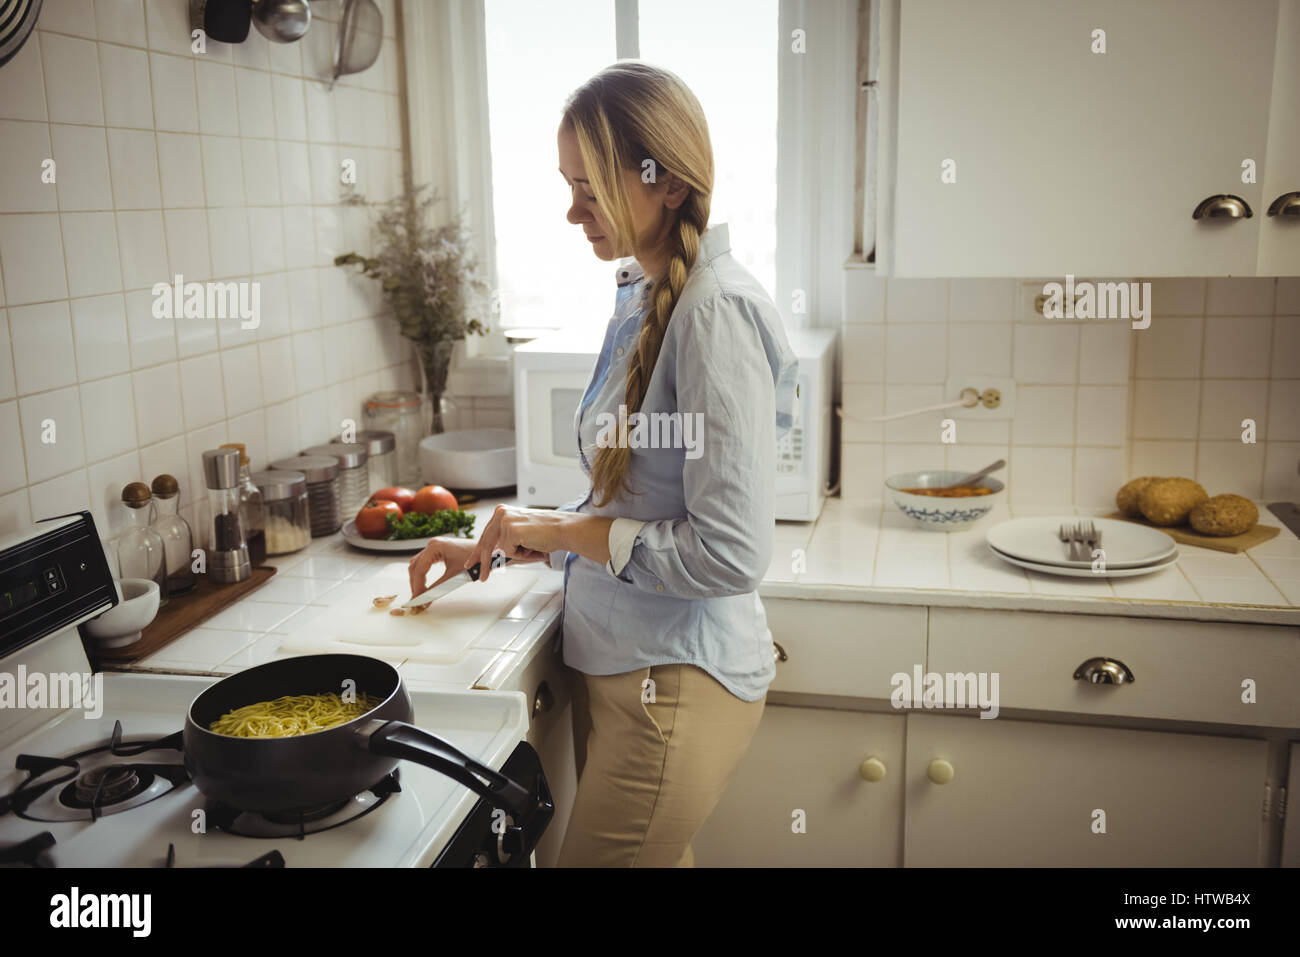 Woman preparing noodles in kitchen - Stock Image